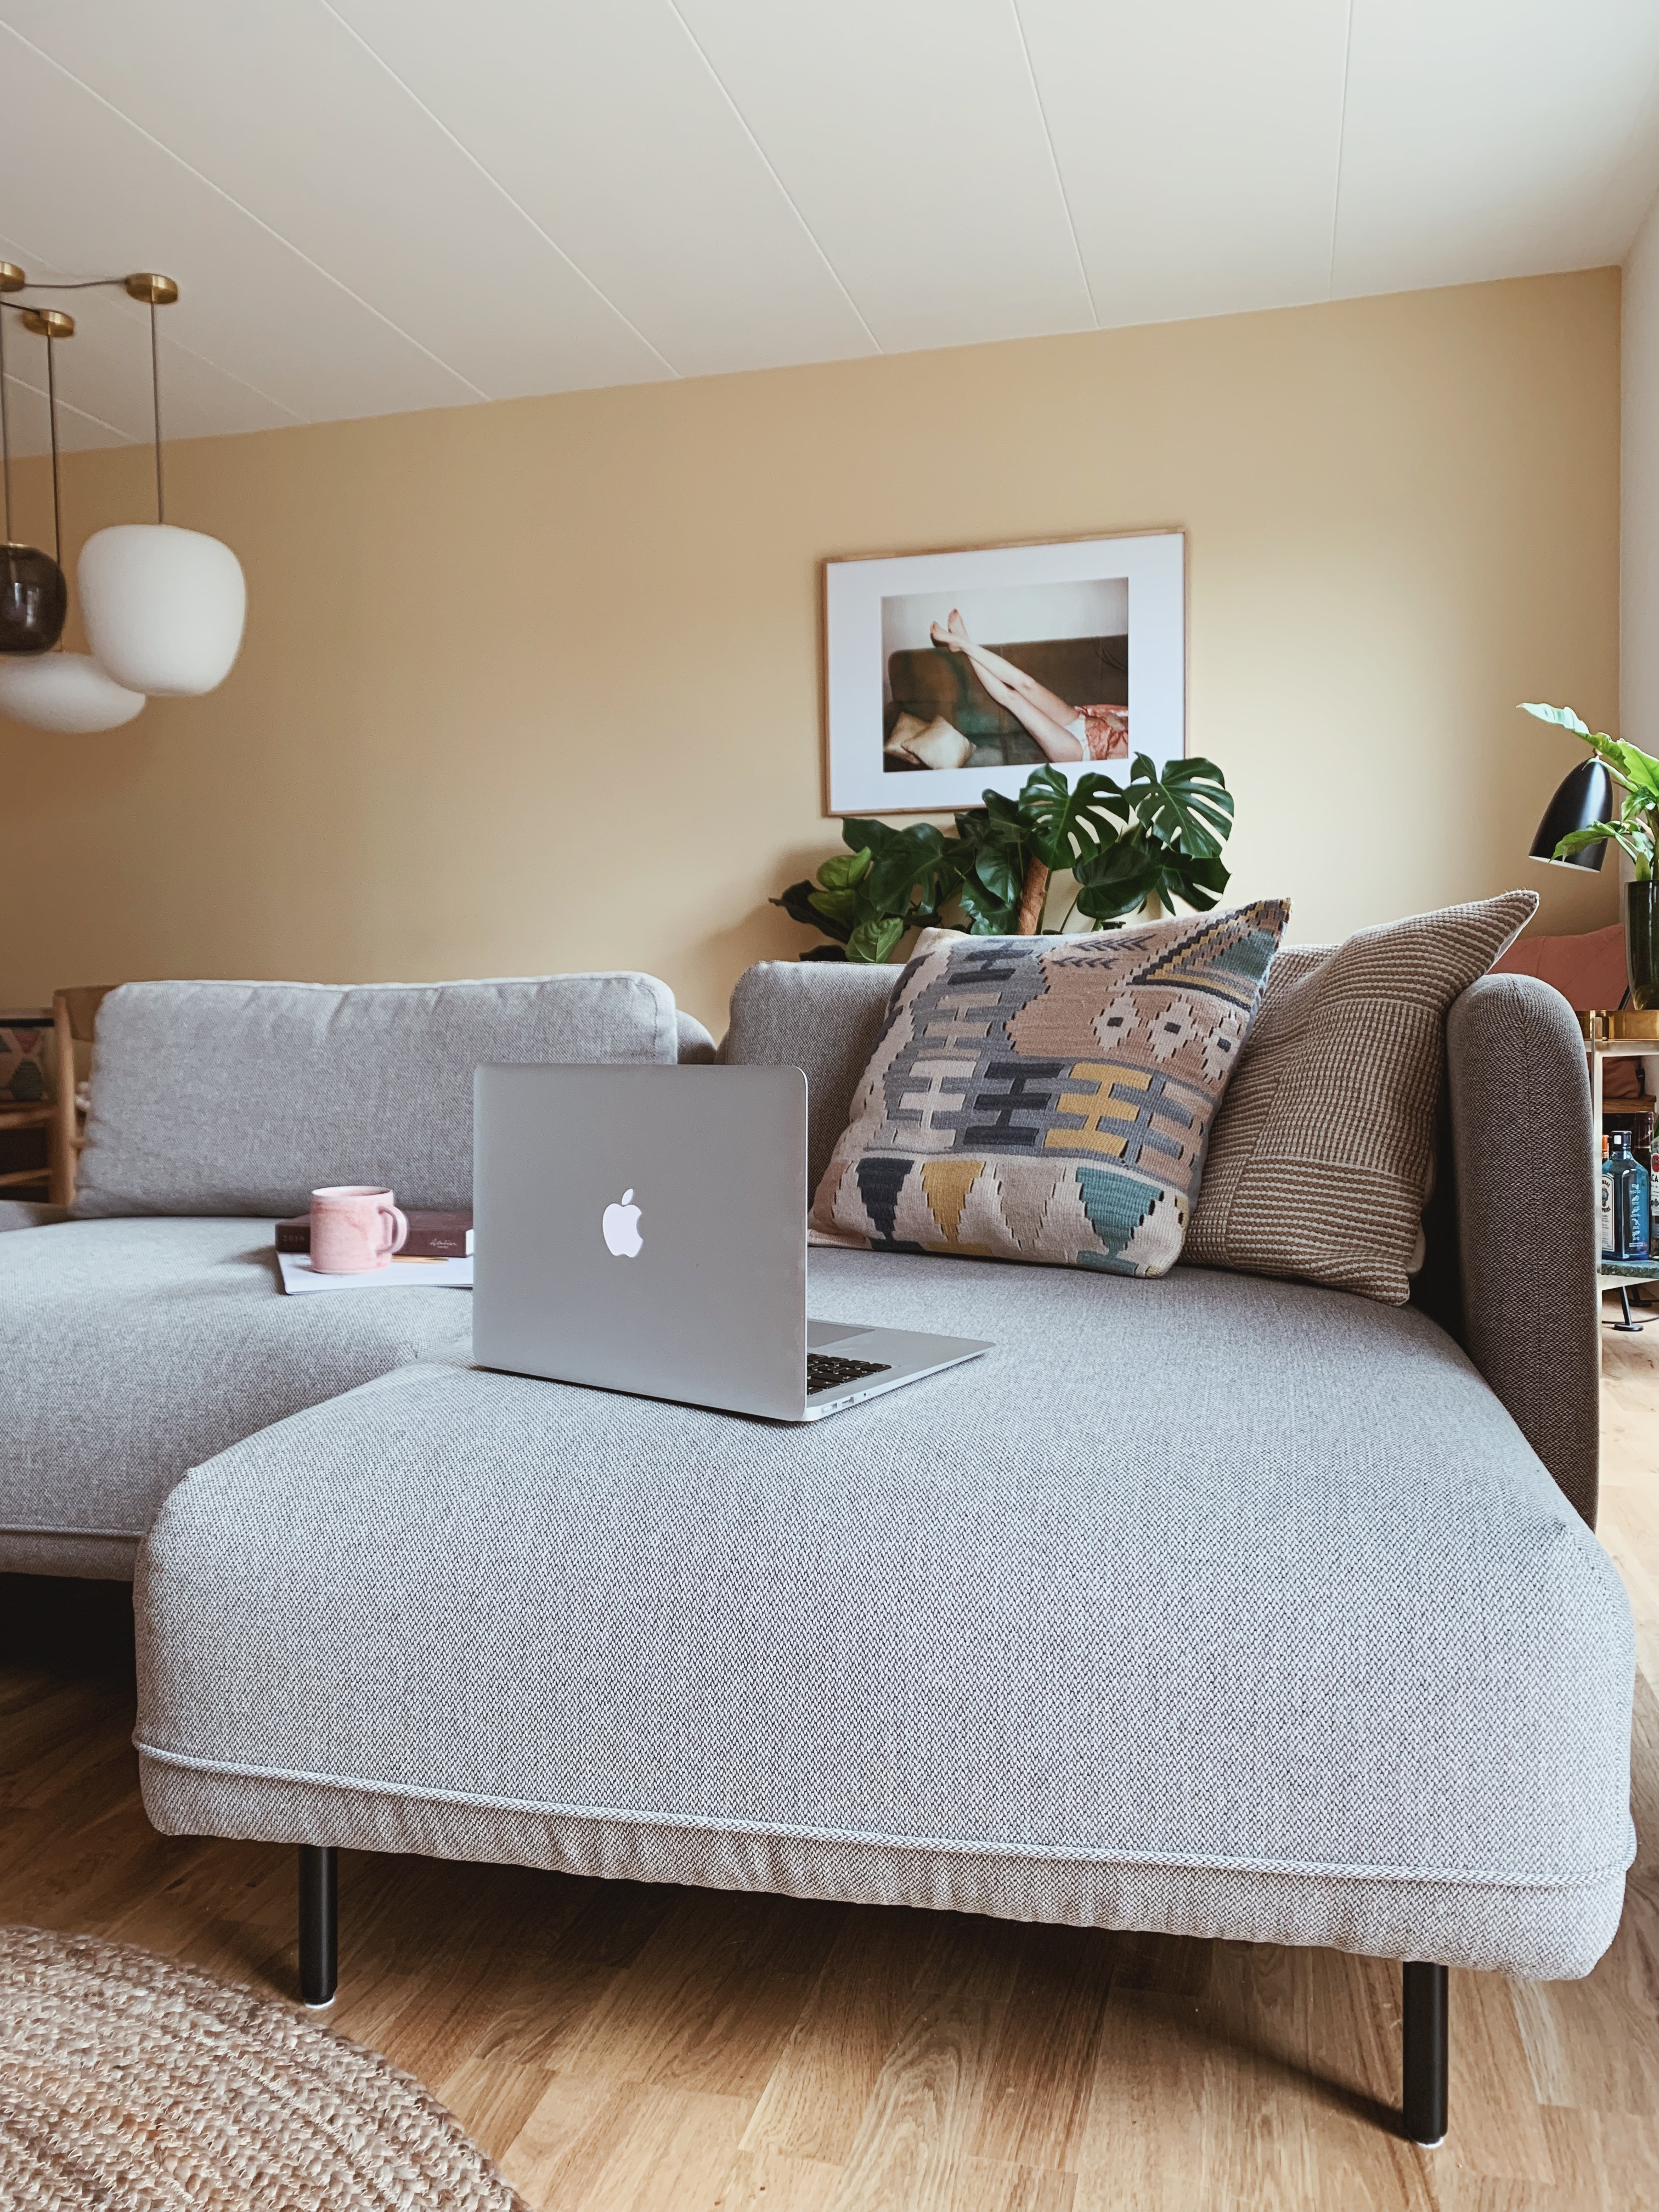 Picture of: Den Perfekte Sofa Kombination Ellis Fra Sofacompany Ditteblog